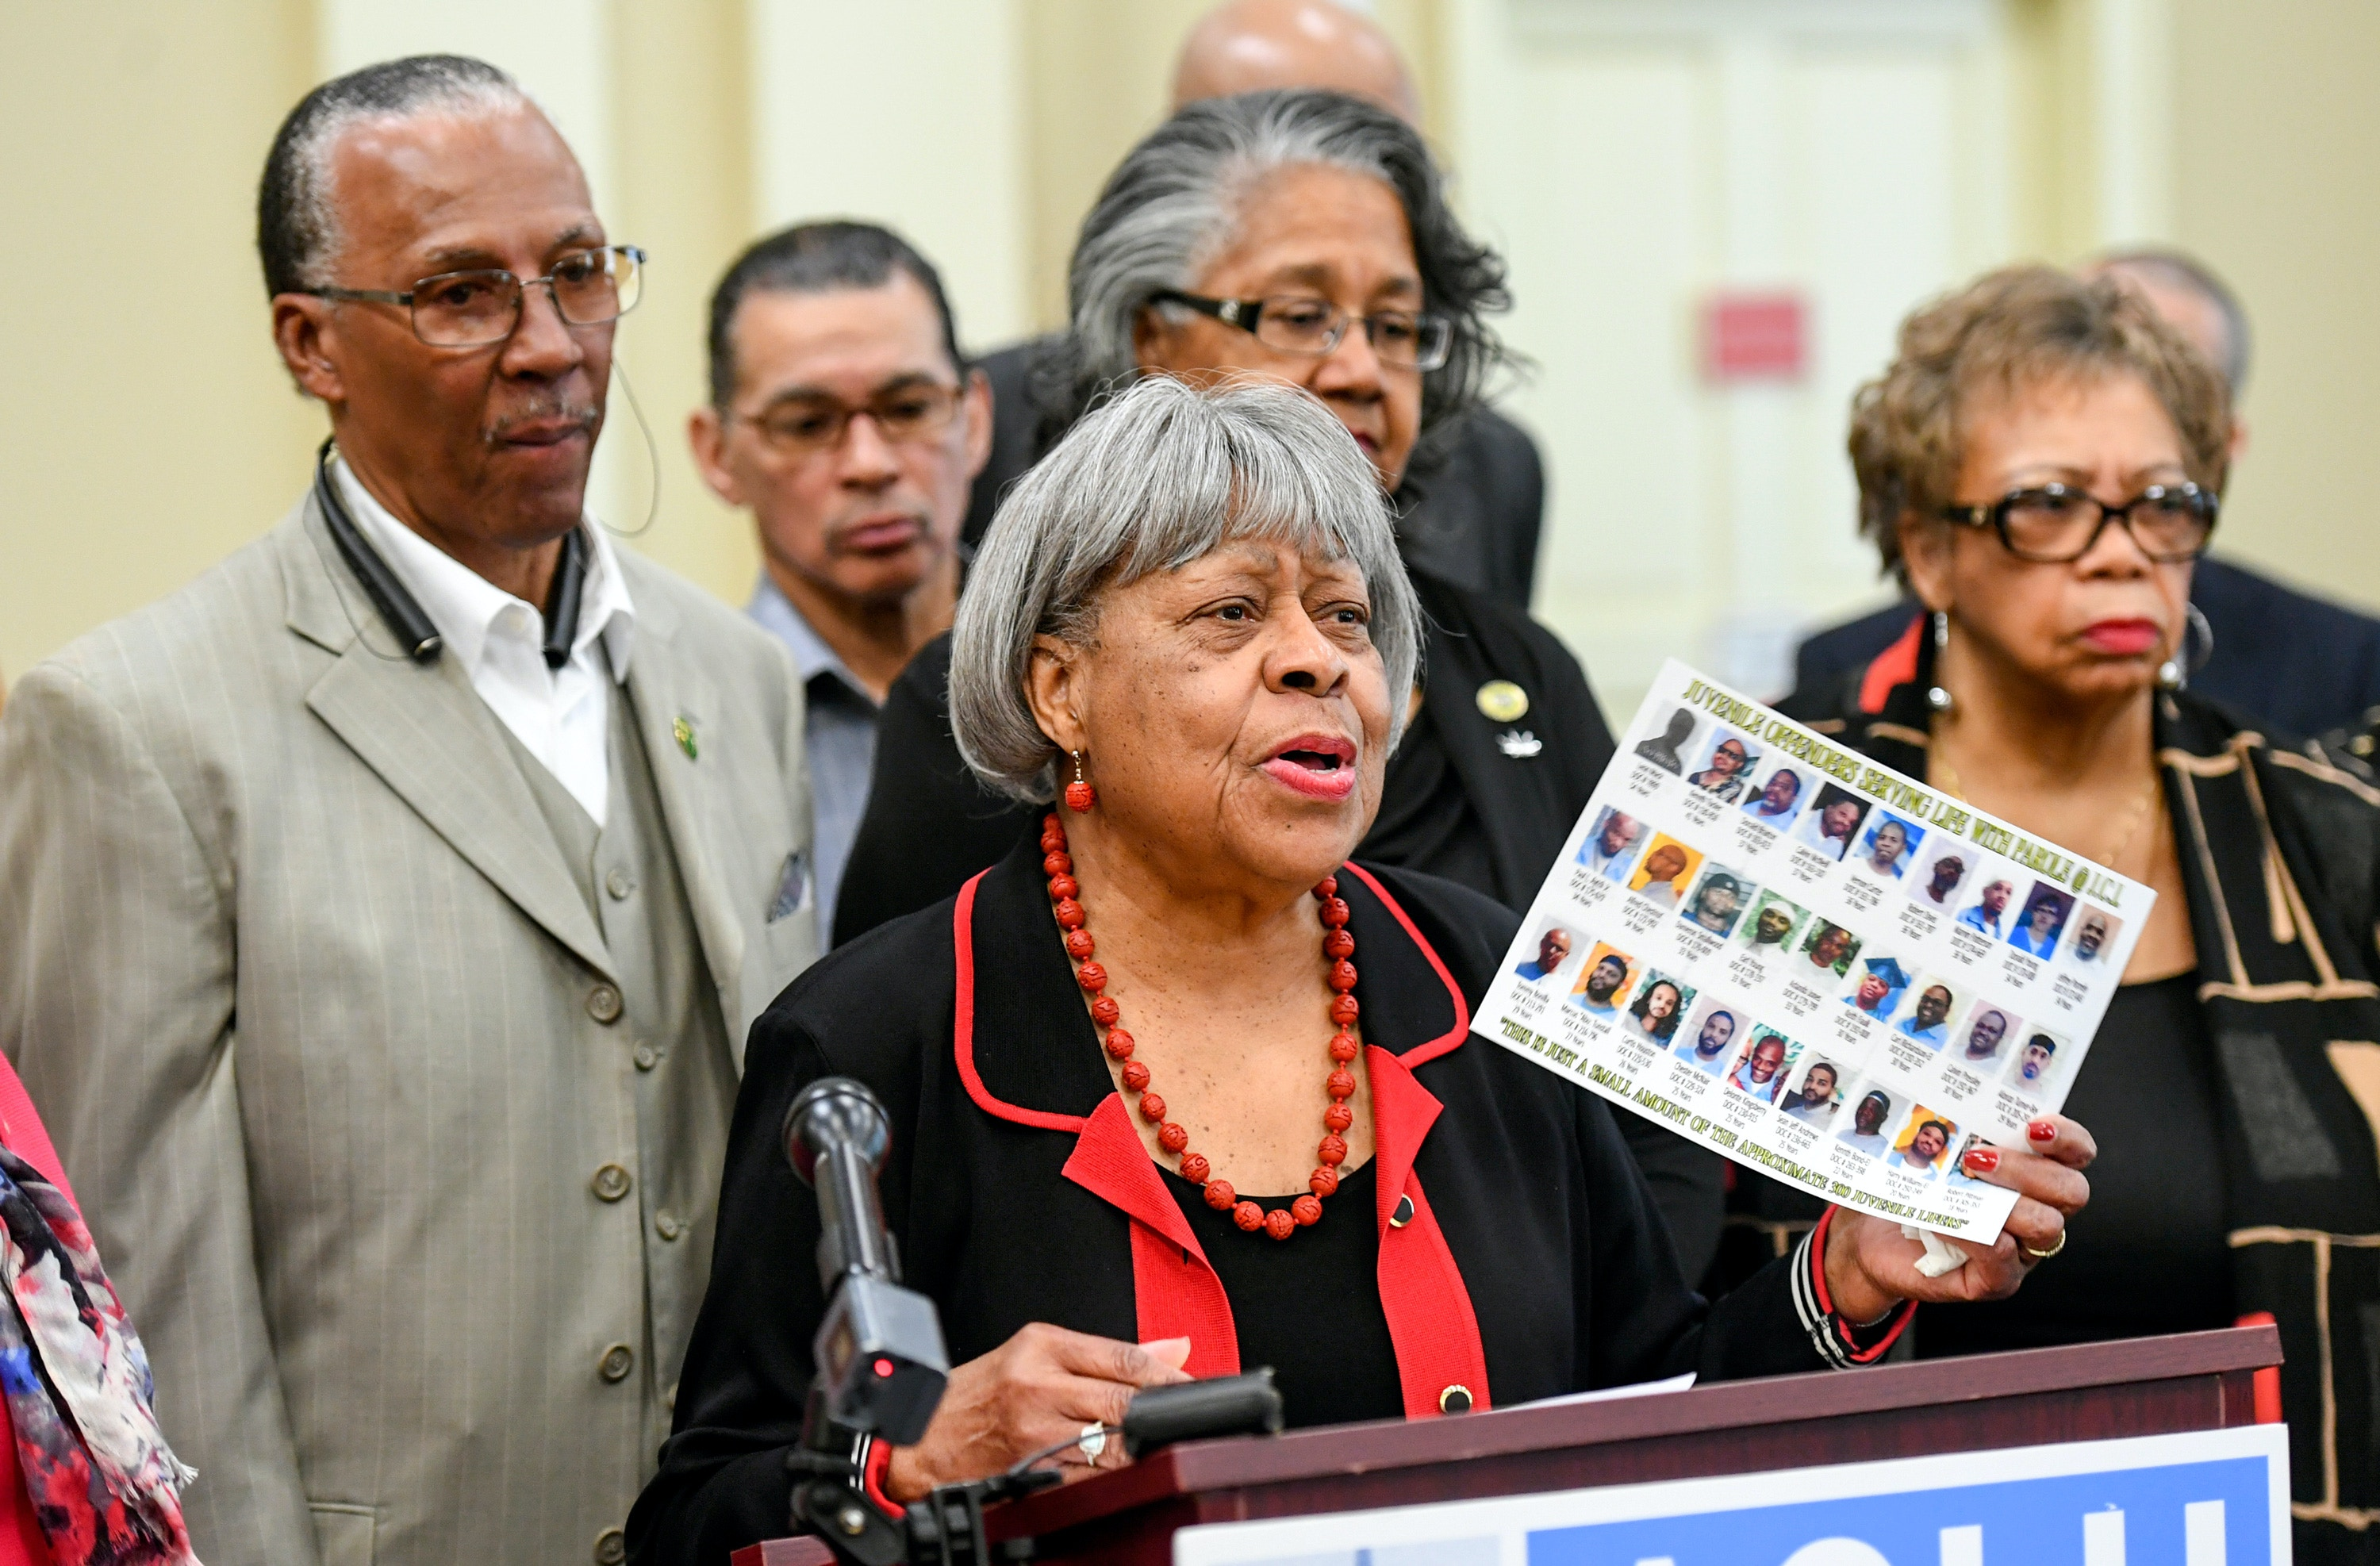 ANNAPOLIS, MD - FEBRUARY 1:  Maryland Senator Delores Kelley shows a page of people still serving life terms ,during a press conference organized in part by the ACLU of Maryland and Legislators in Annapolis proposing to take the governor -- and politics -- out of the parole process for people serving life in prison. Many who were juvenile offenders when they committed their crimes.(Photo by Jonathan Newton/The Washington Post via Getty Images)